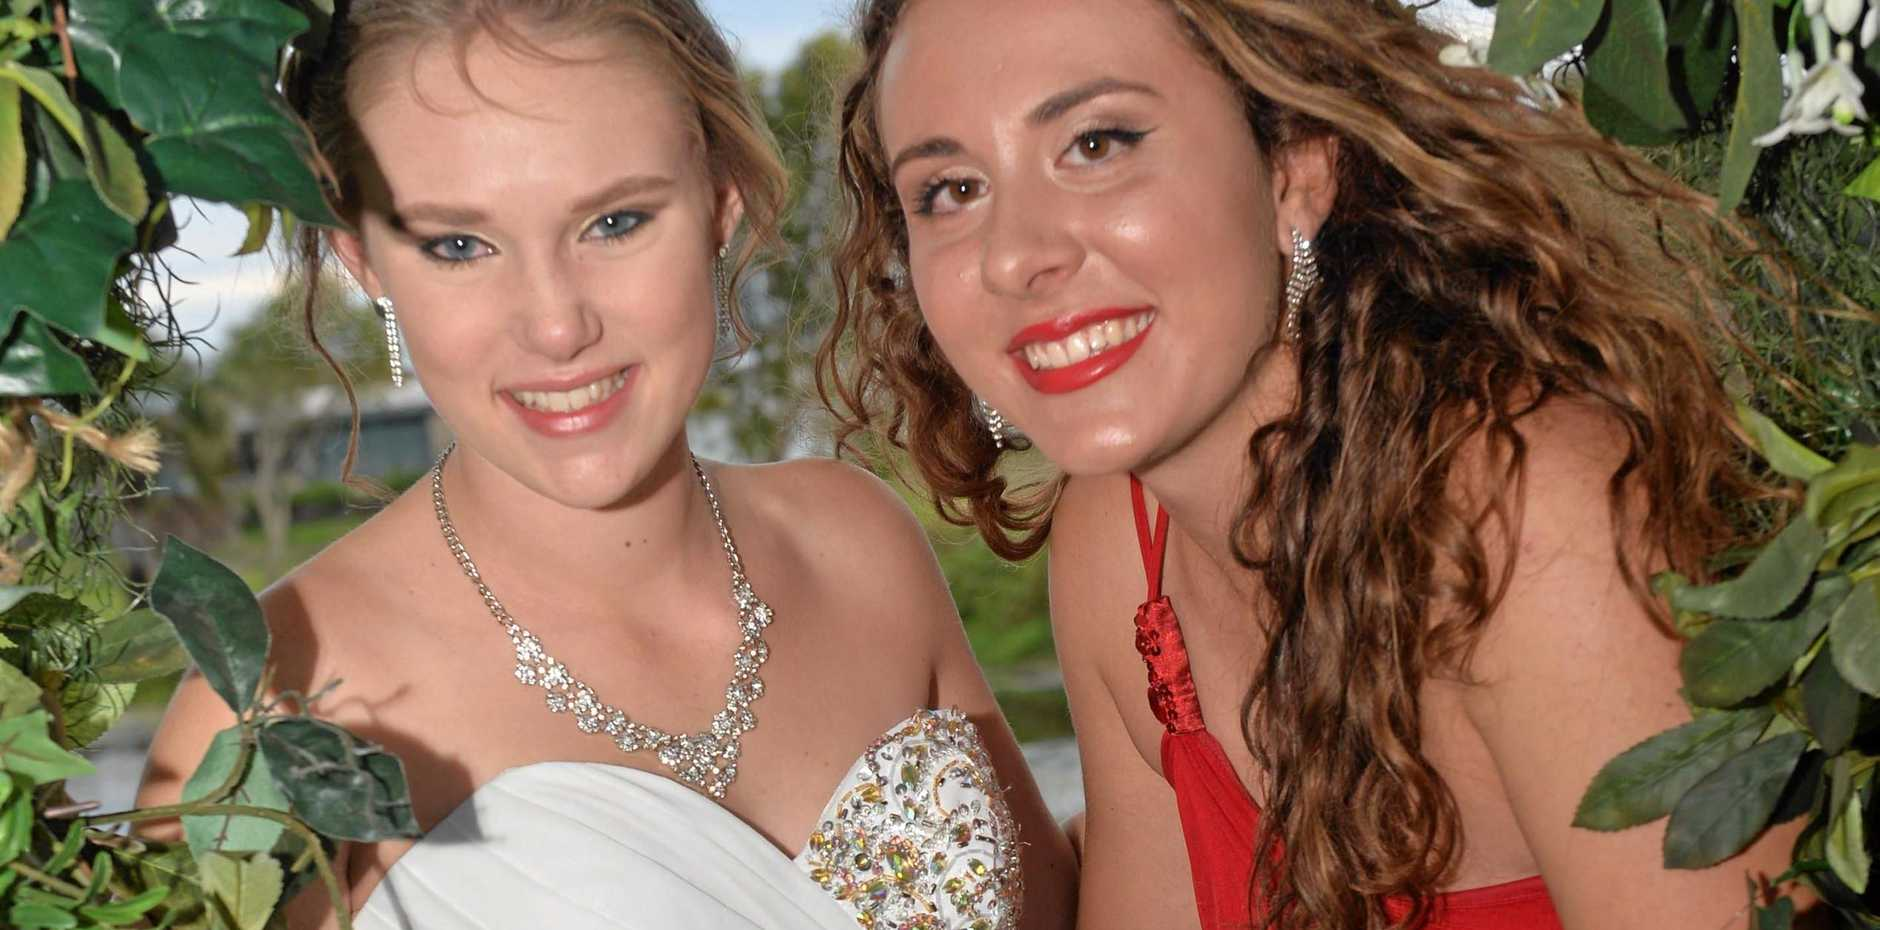 Mackay North State High School Formal was held at the Windmill Centre.